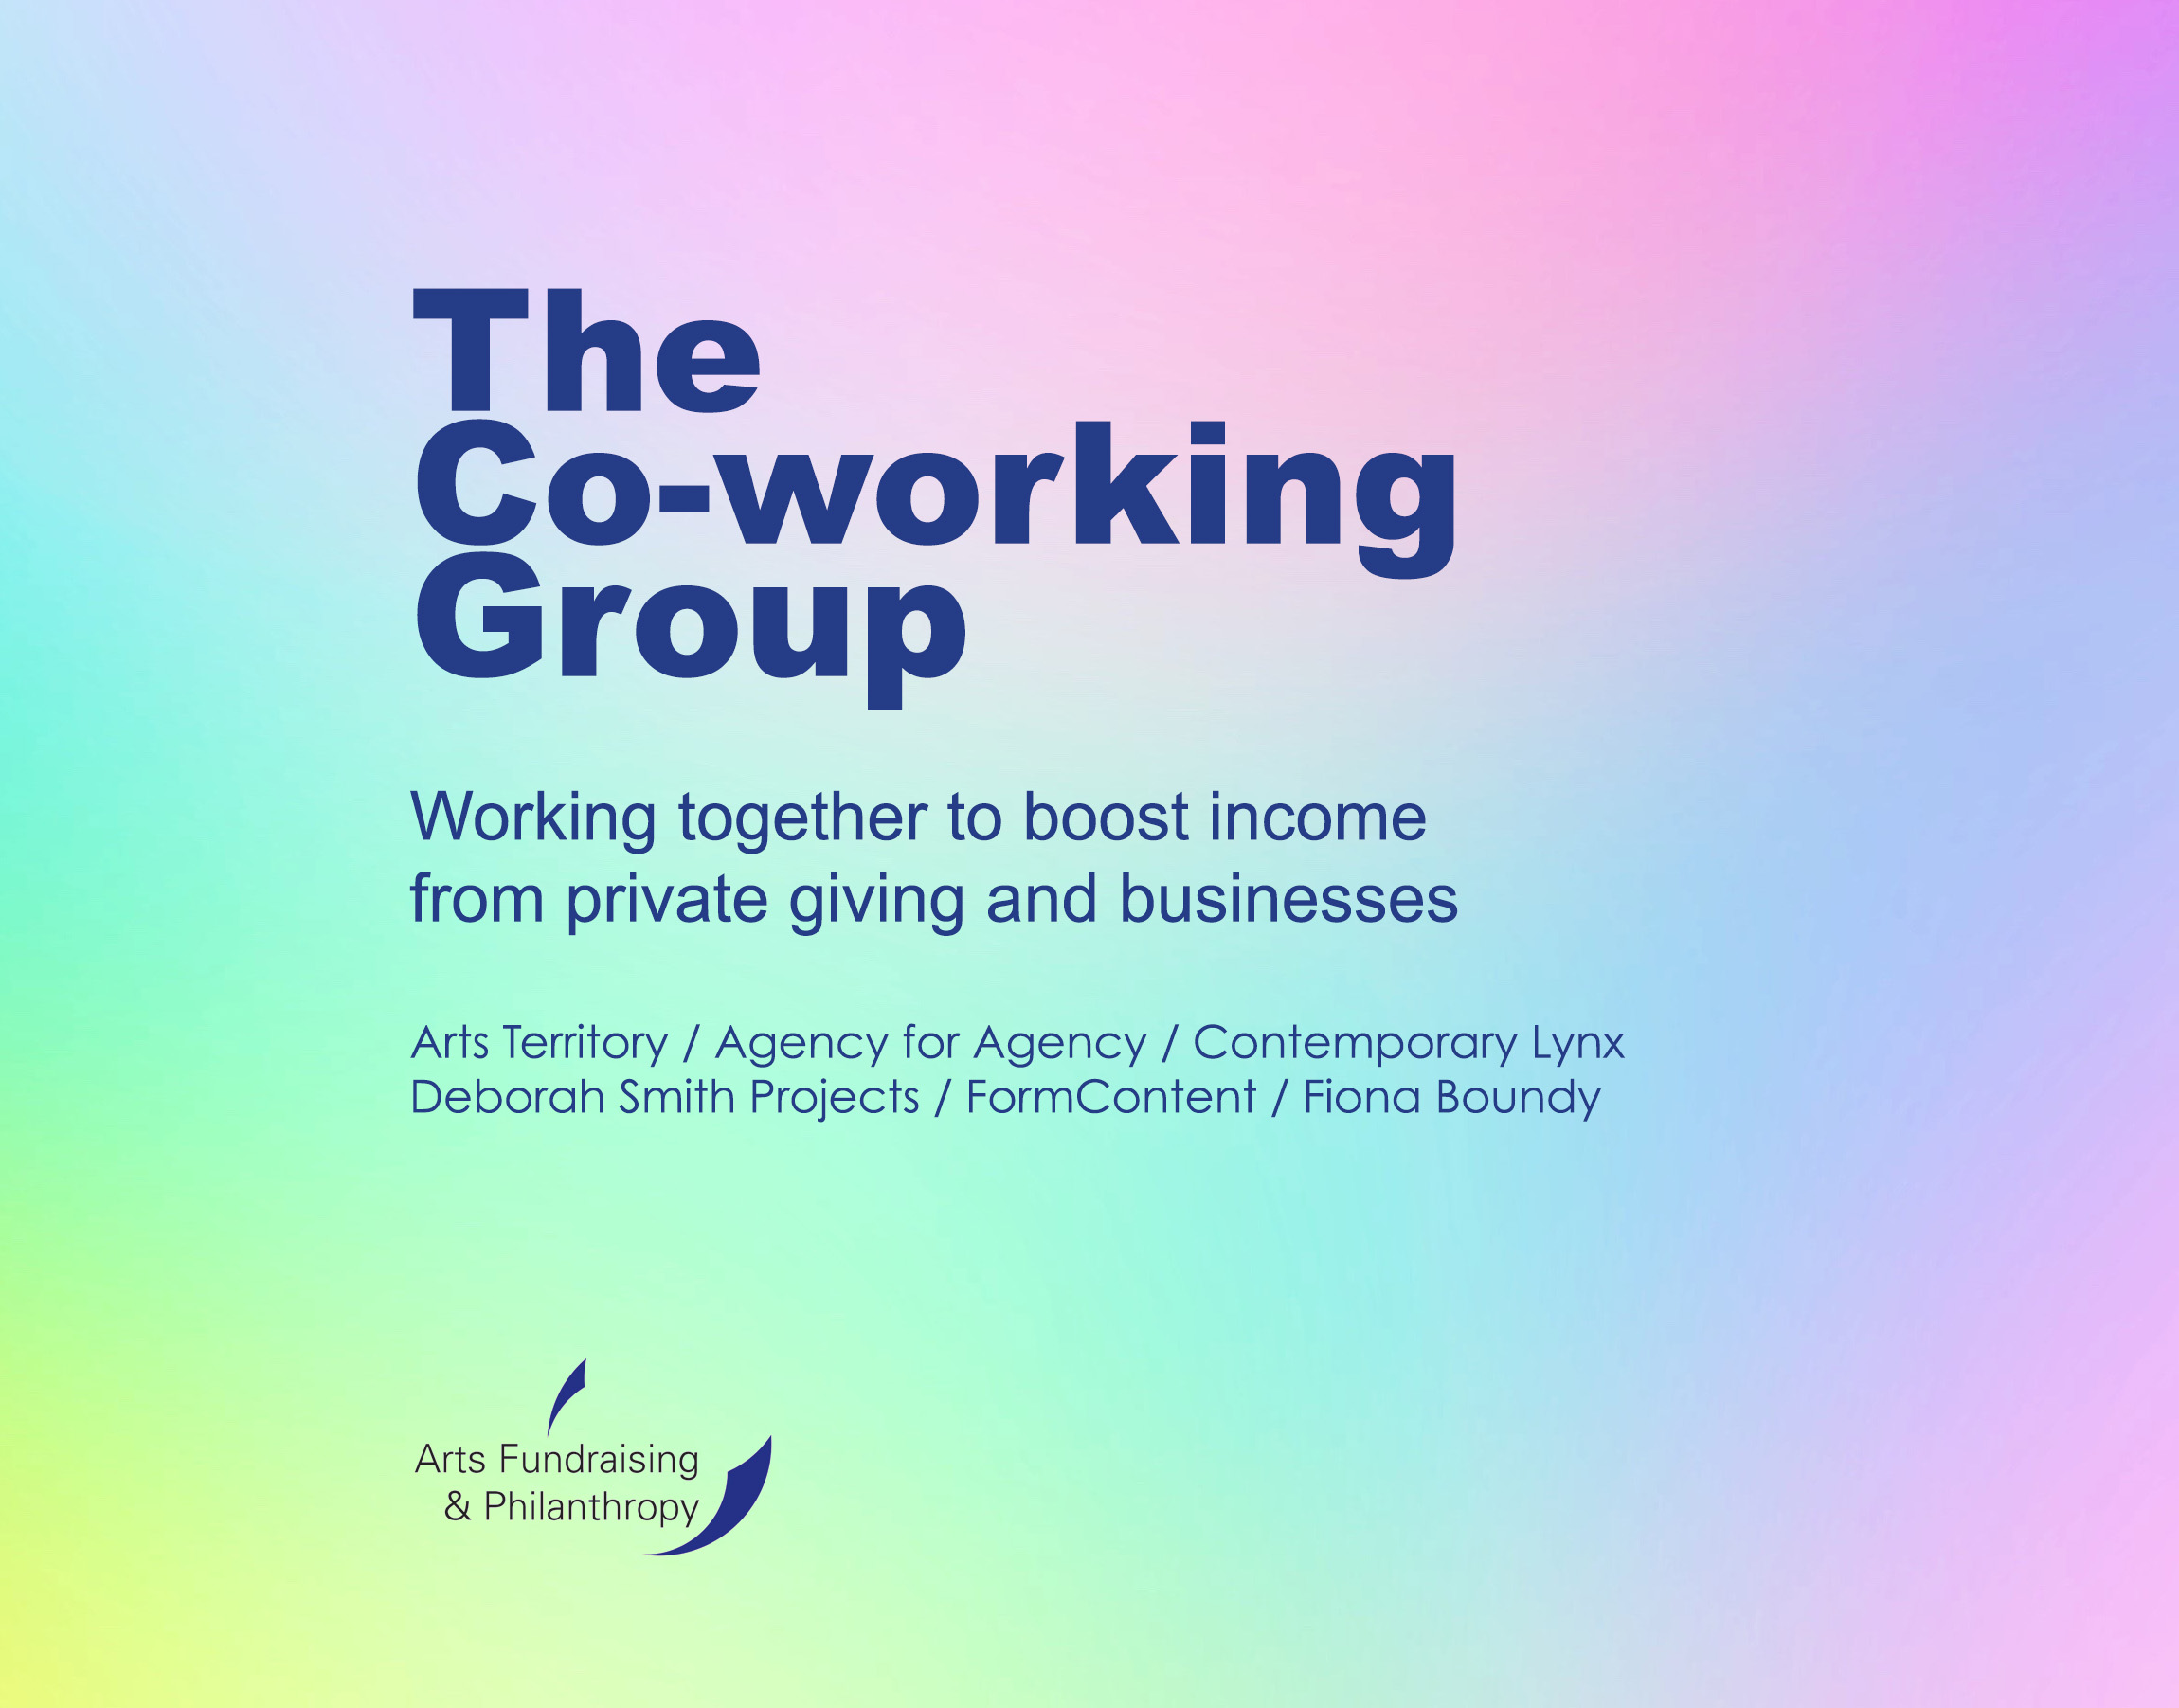 The Co-Working Group